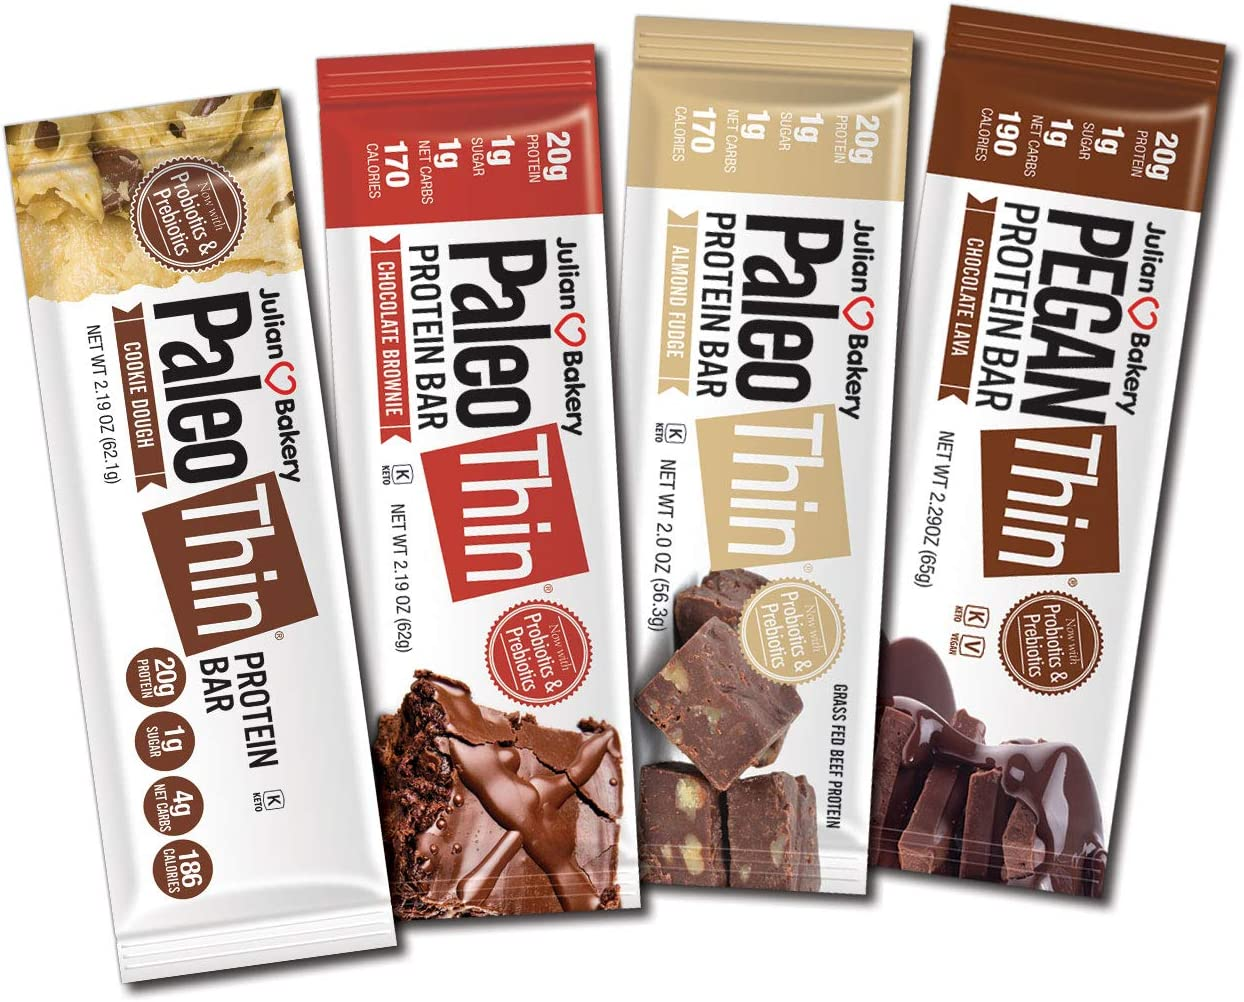 Julian Bakery Paleo Thin Protein Bar | Chocolate Lovers Variety | 20g Protein | 4 Flavors | Dairy-Free : Soy-Free : Gluten-Free | 12 Bars